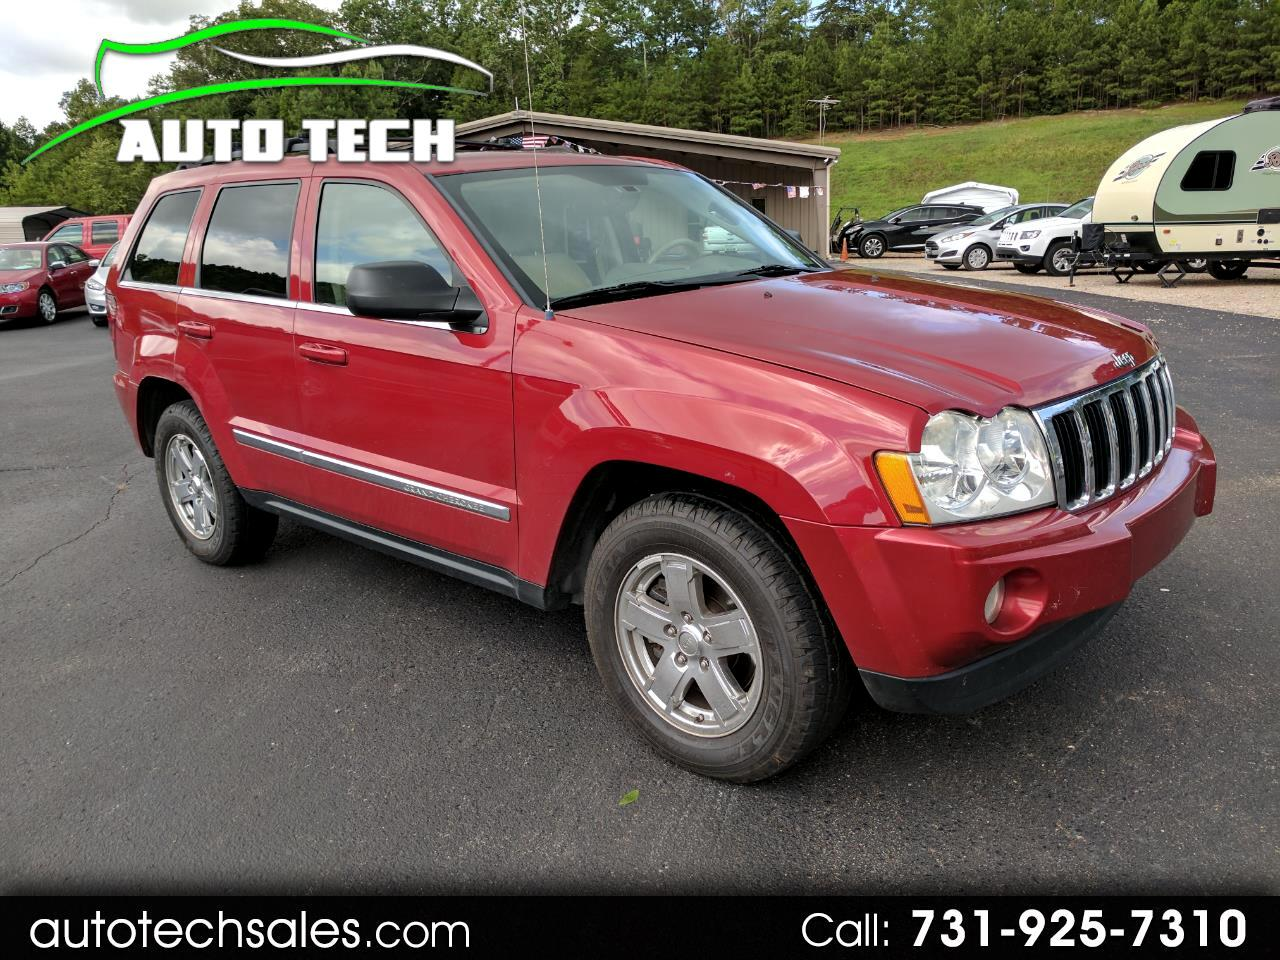 2006 Jeep Grand Cherokee Limited 2WD